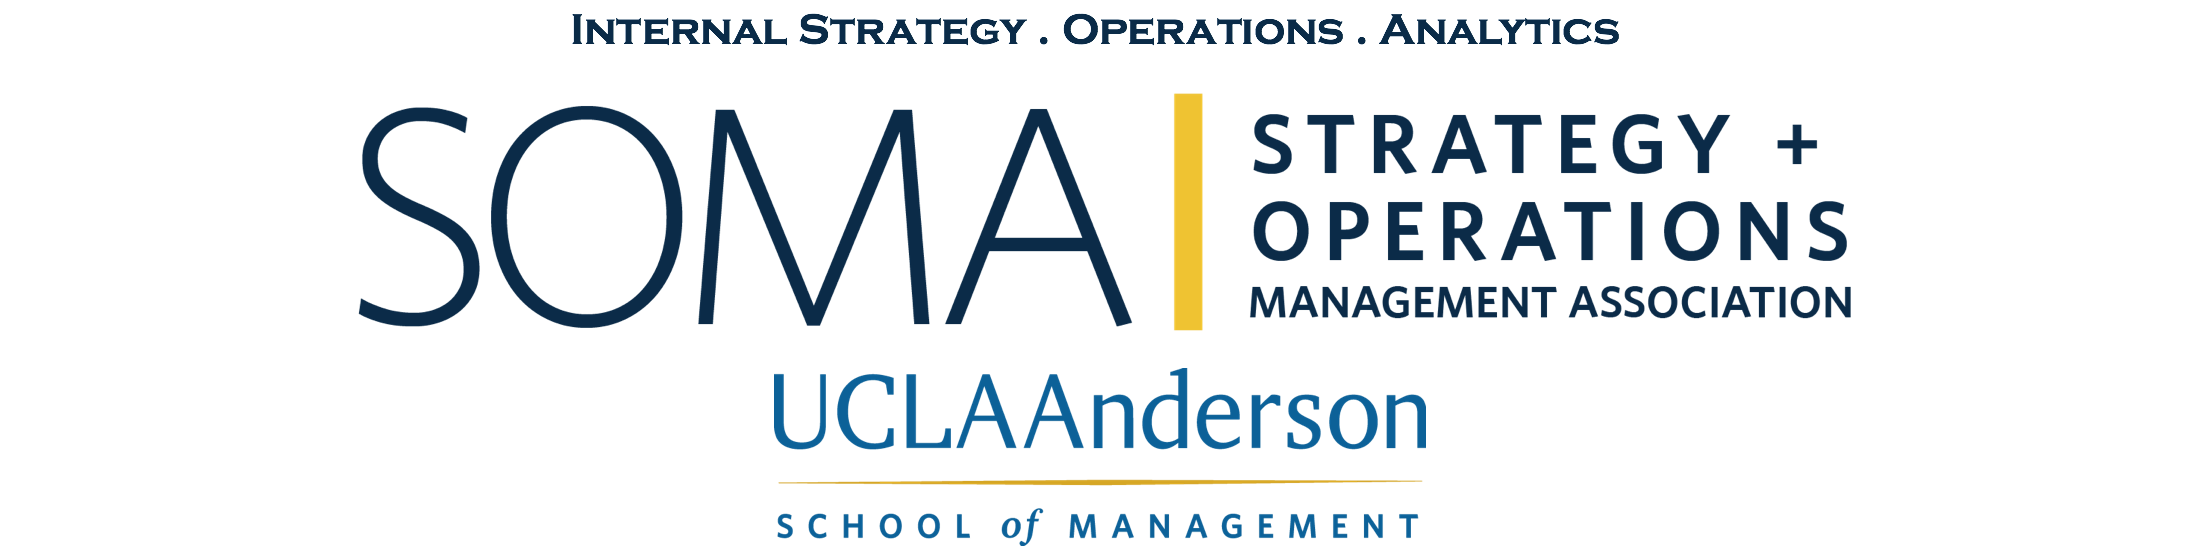 Strategy & Operations Management Association | UCLA Anderson